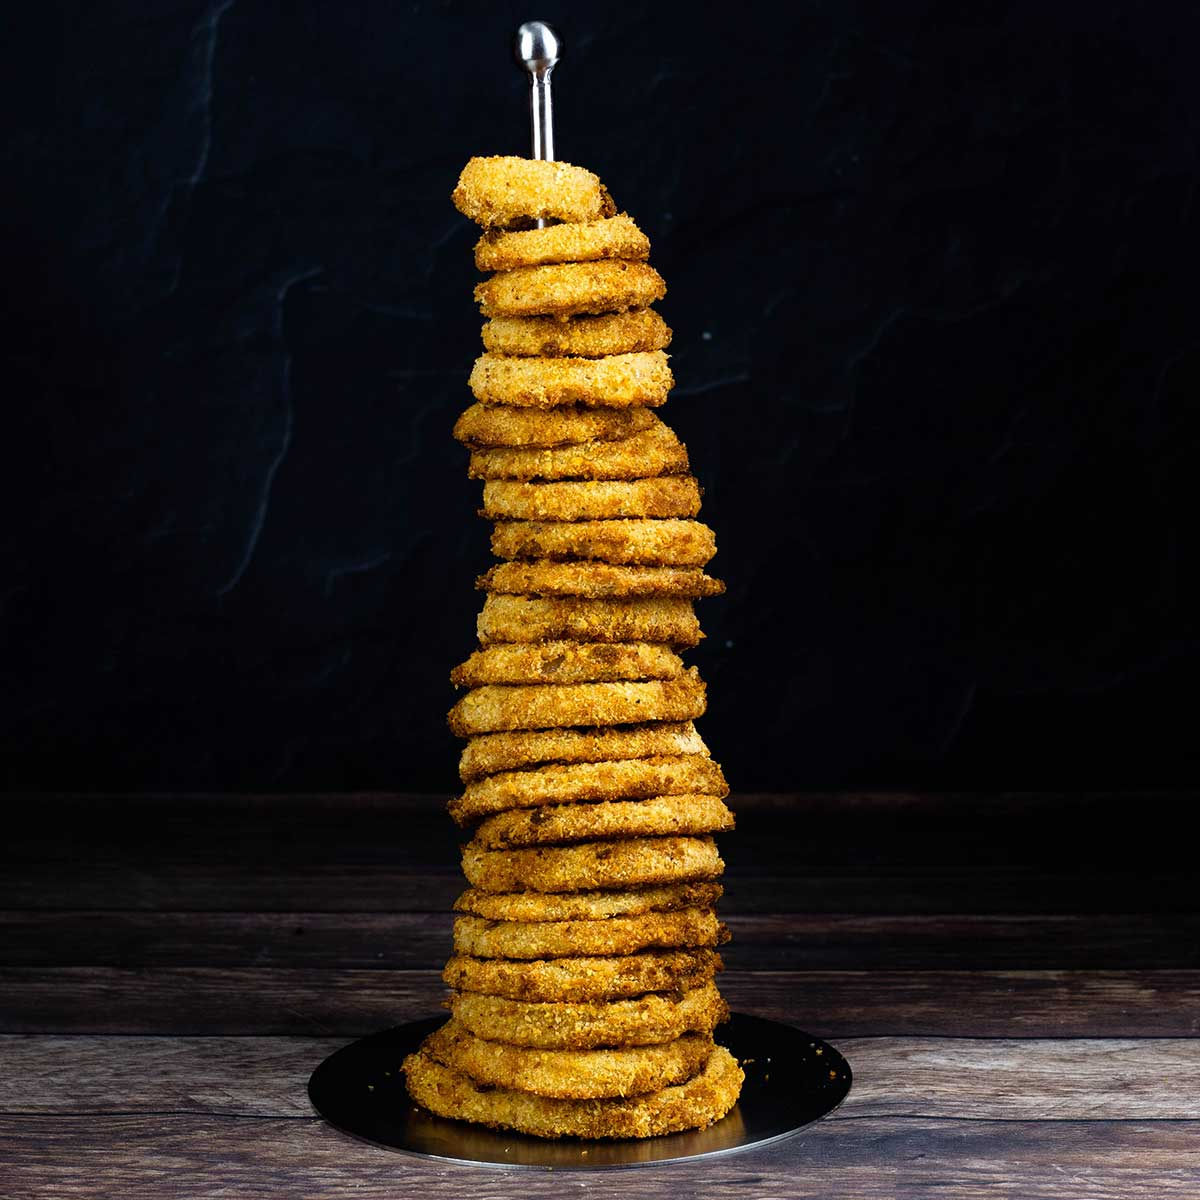 onion rings stacked in a tower